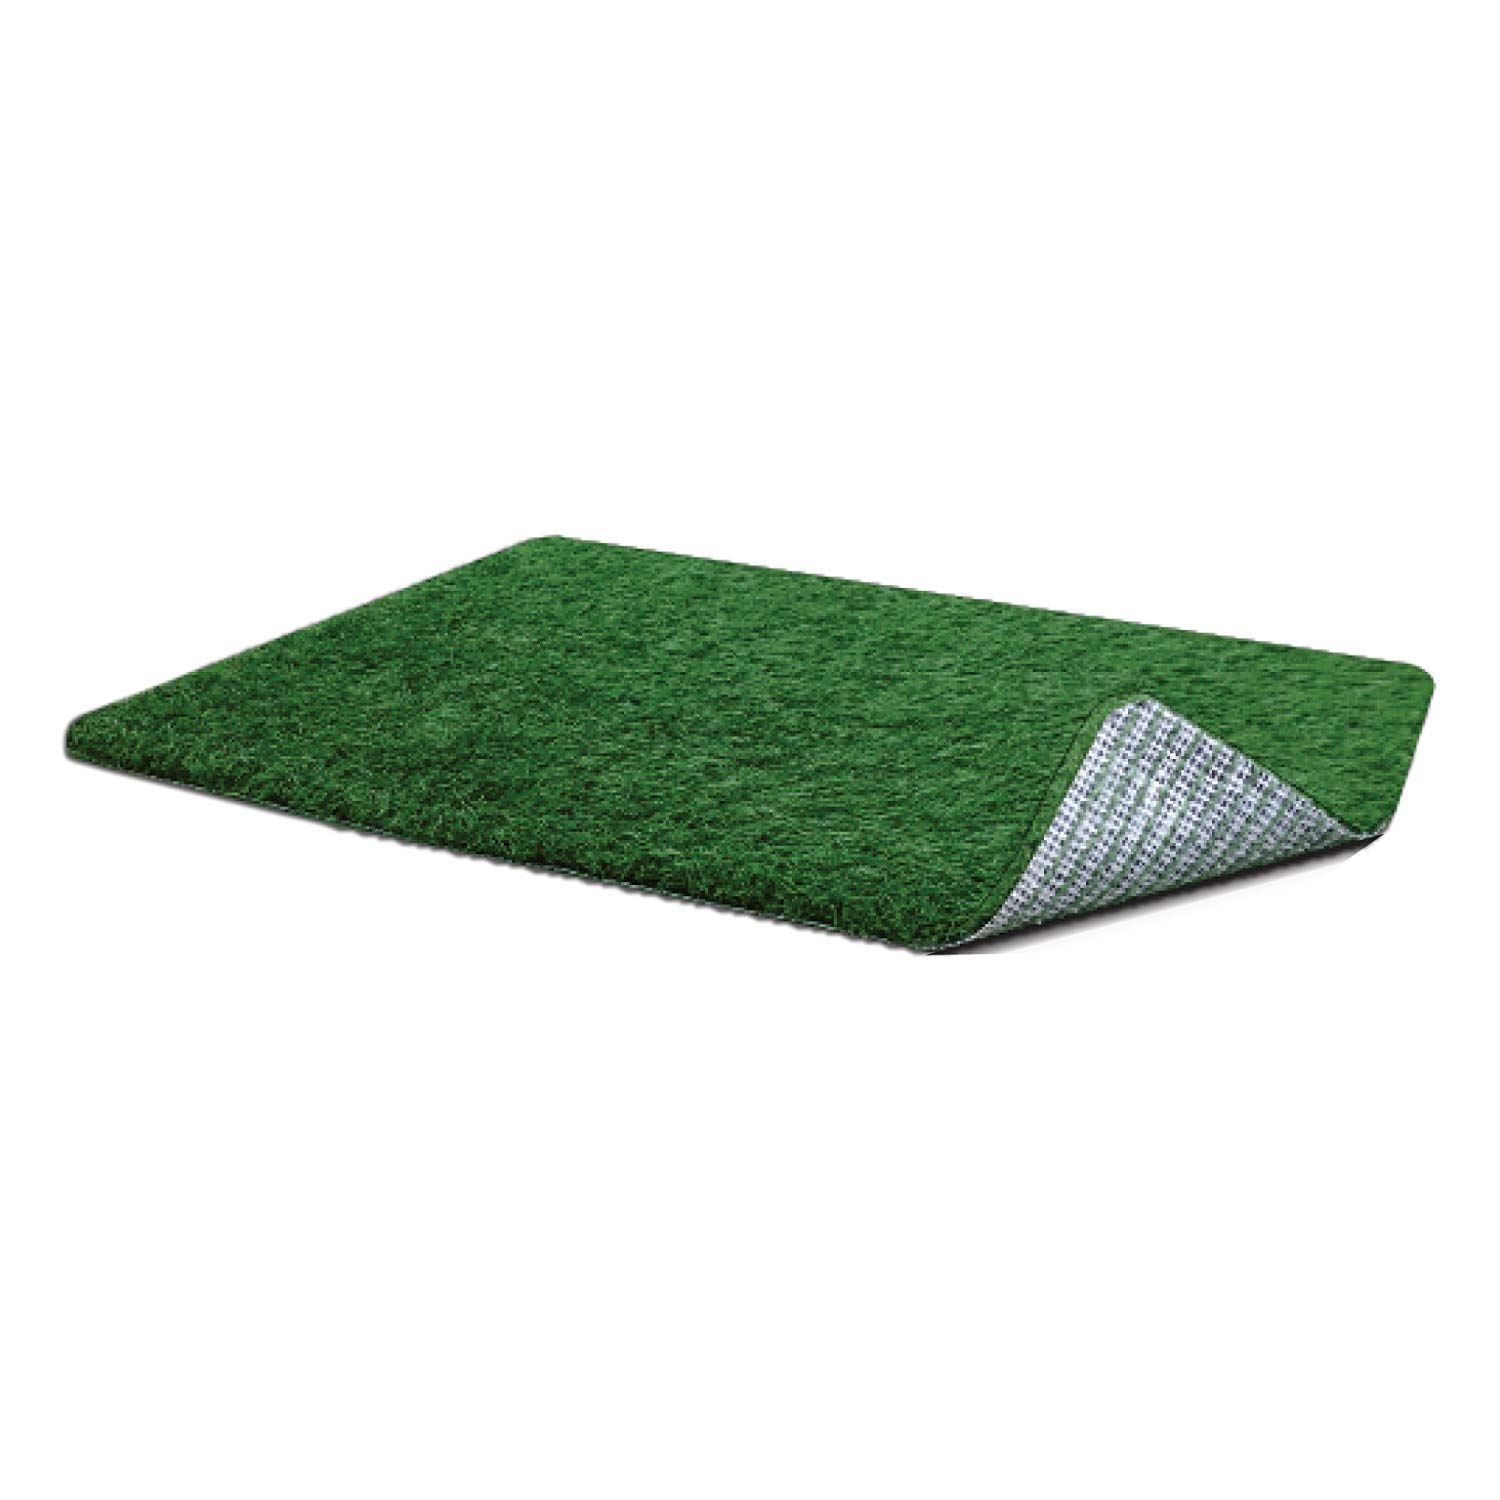 Poochpad Pg1828Rg Medium Indoor Turf Dog Potty Replacement Grass